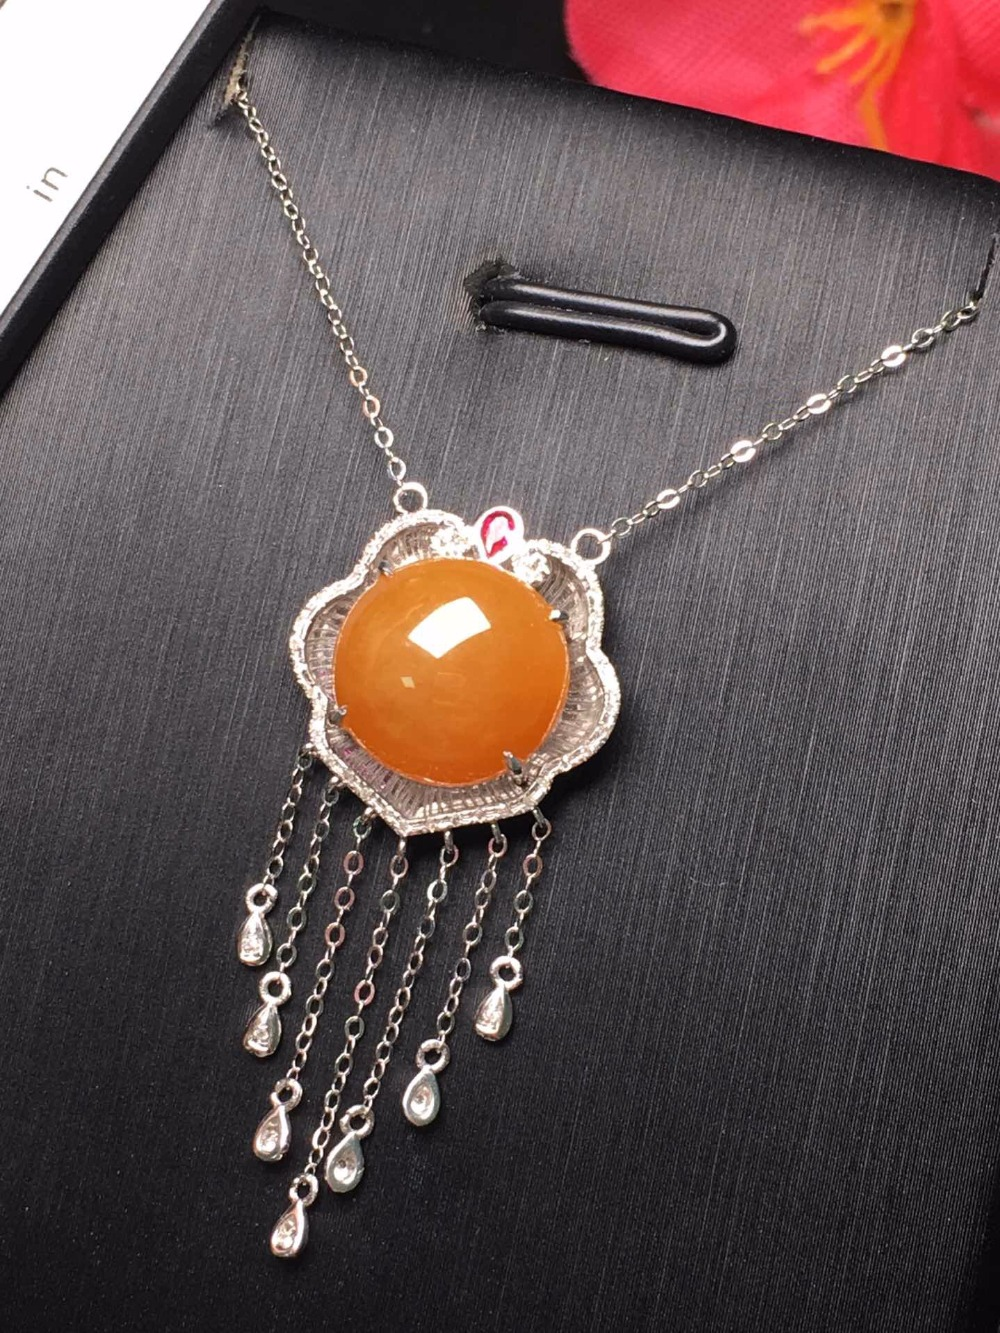 504 Fine Jewelry Pure 18 K Yellow Gold Jewelry 100% Natural Burmes Red Yellow Gemstone Pendant Necklace Fine Pendants Necklaces504 Fine Jewelry Pure 18 K Yellow Gold Jewelry 100% Natural Burmes Red Yellow Gemstone Pendant Necklace Fine Pendants Necklaces